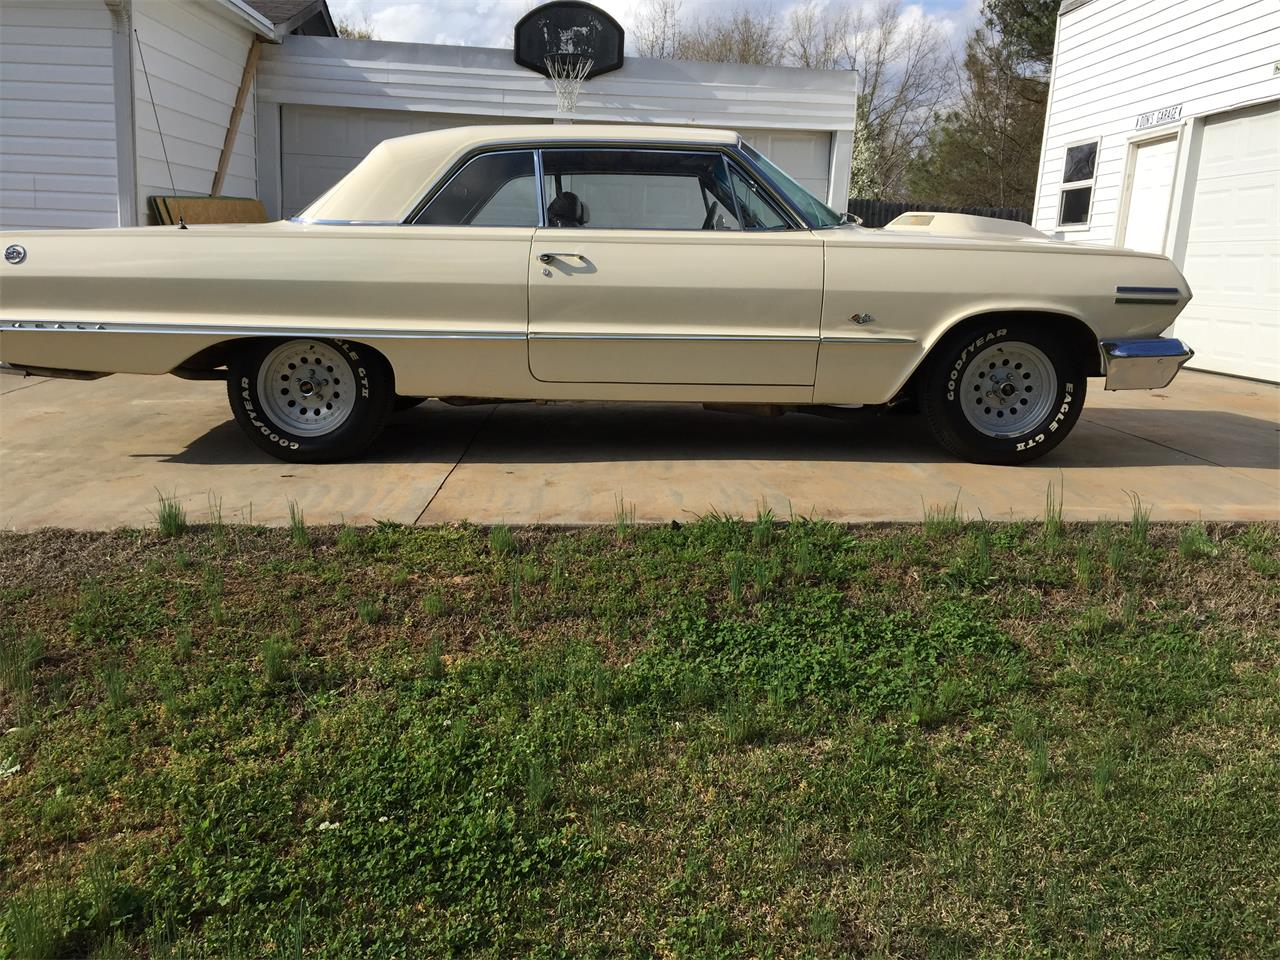 1963 Chevrolet Impala (CC-1155000) for sale in Ware Shoals, South Carolina